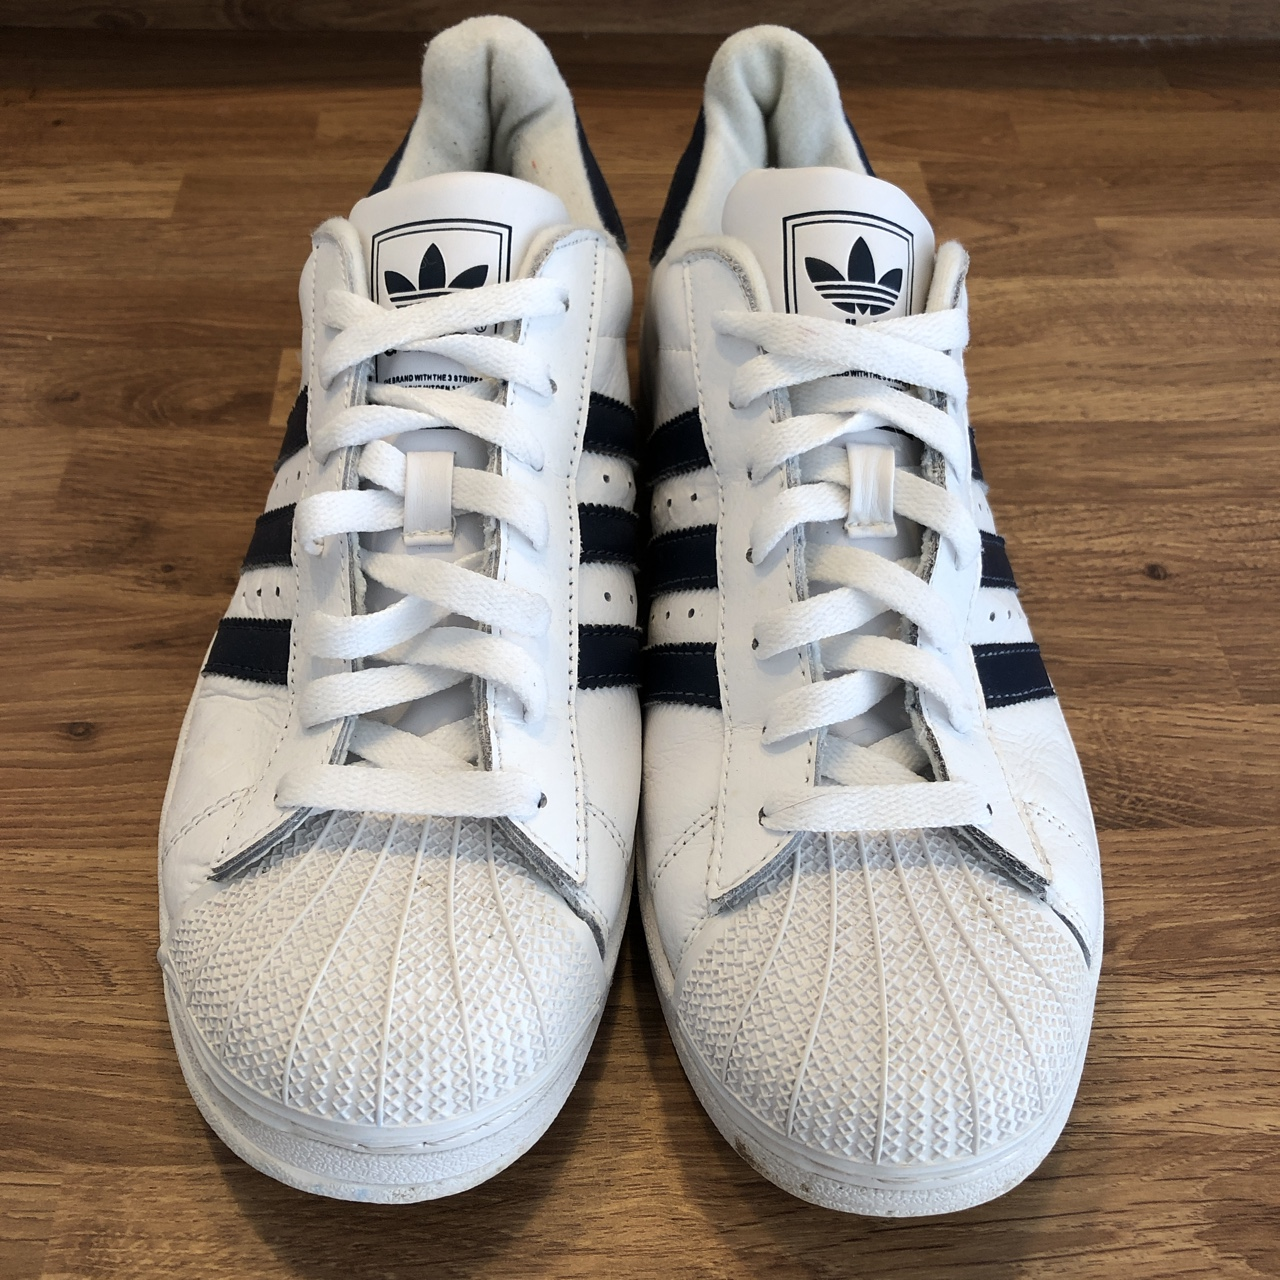 adidas superstar size 9